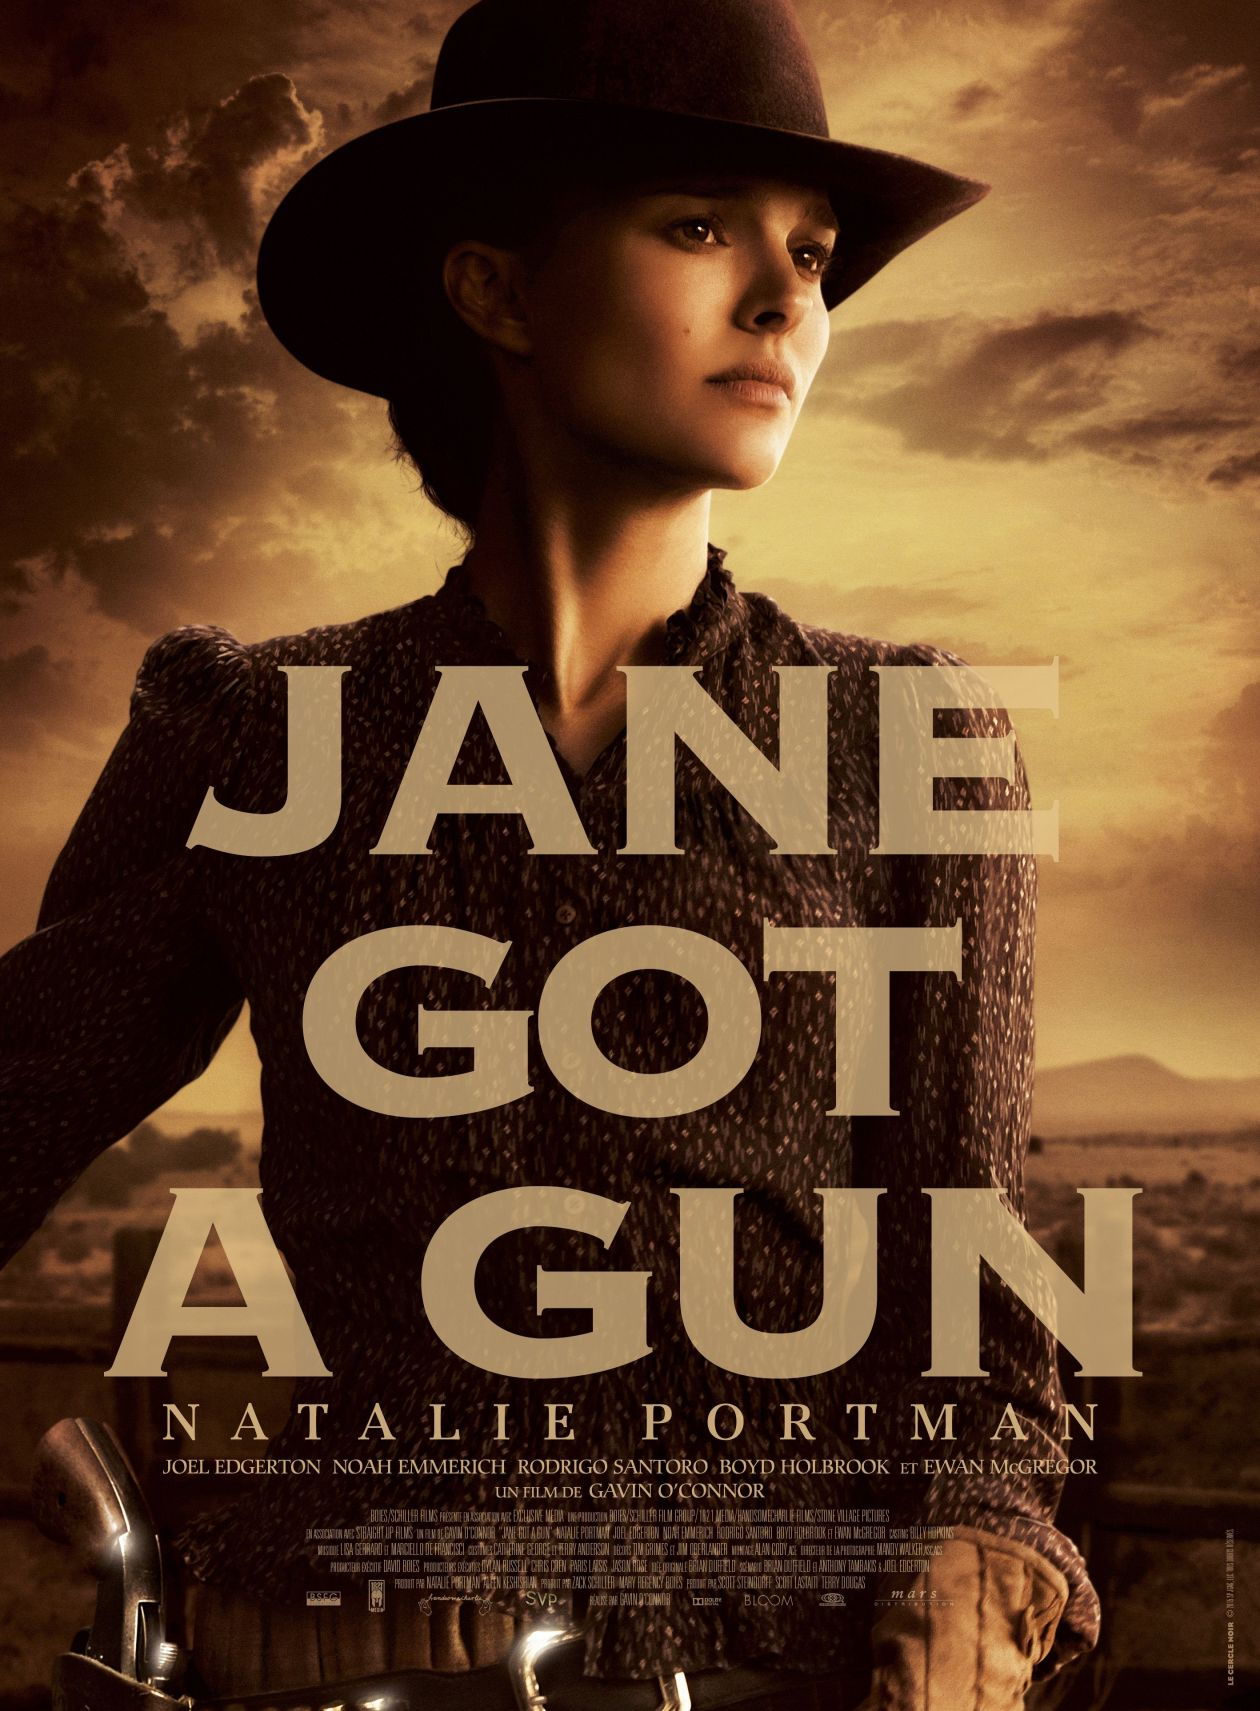 Natalie Portman actress | Jane got a gun | Gavin O'Connor 2015 Movie Poster Affiche film